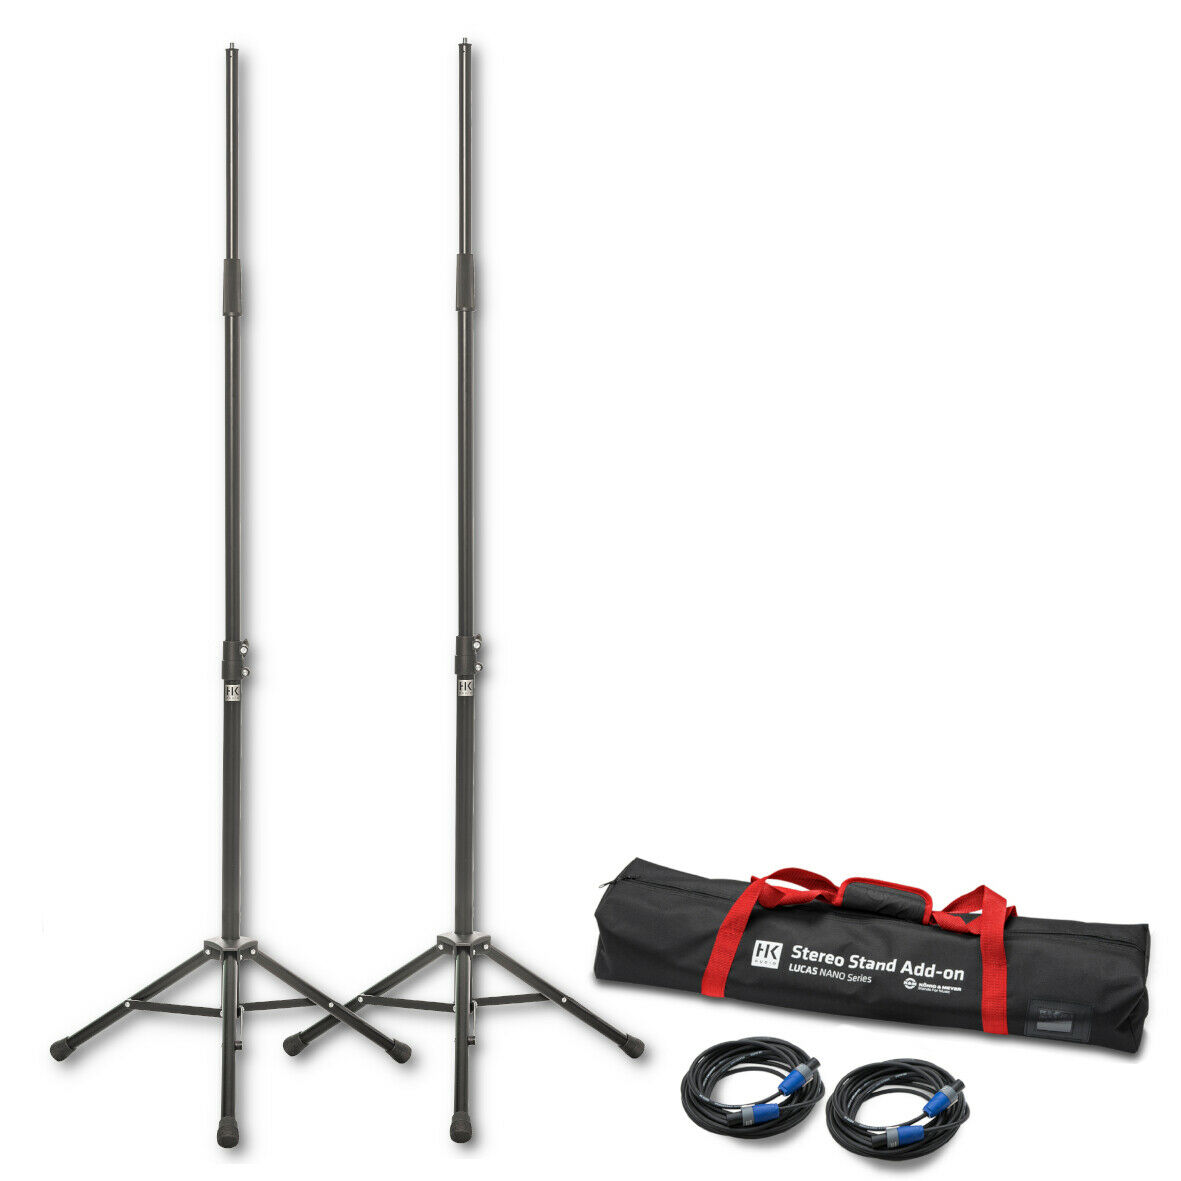 LUCAS NANO 600 SERIES STEREO STAND ADD-ON